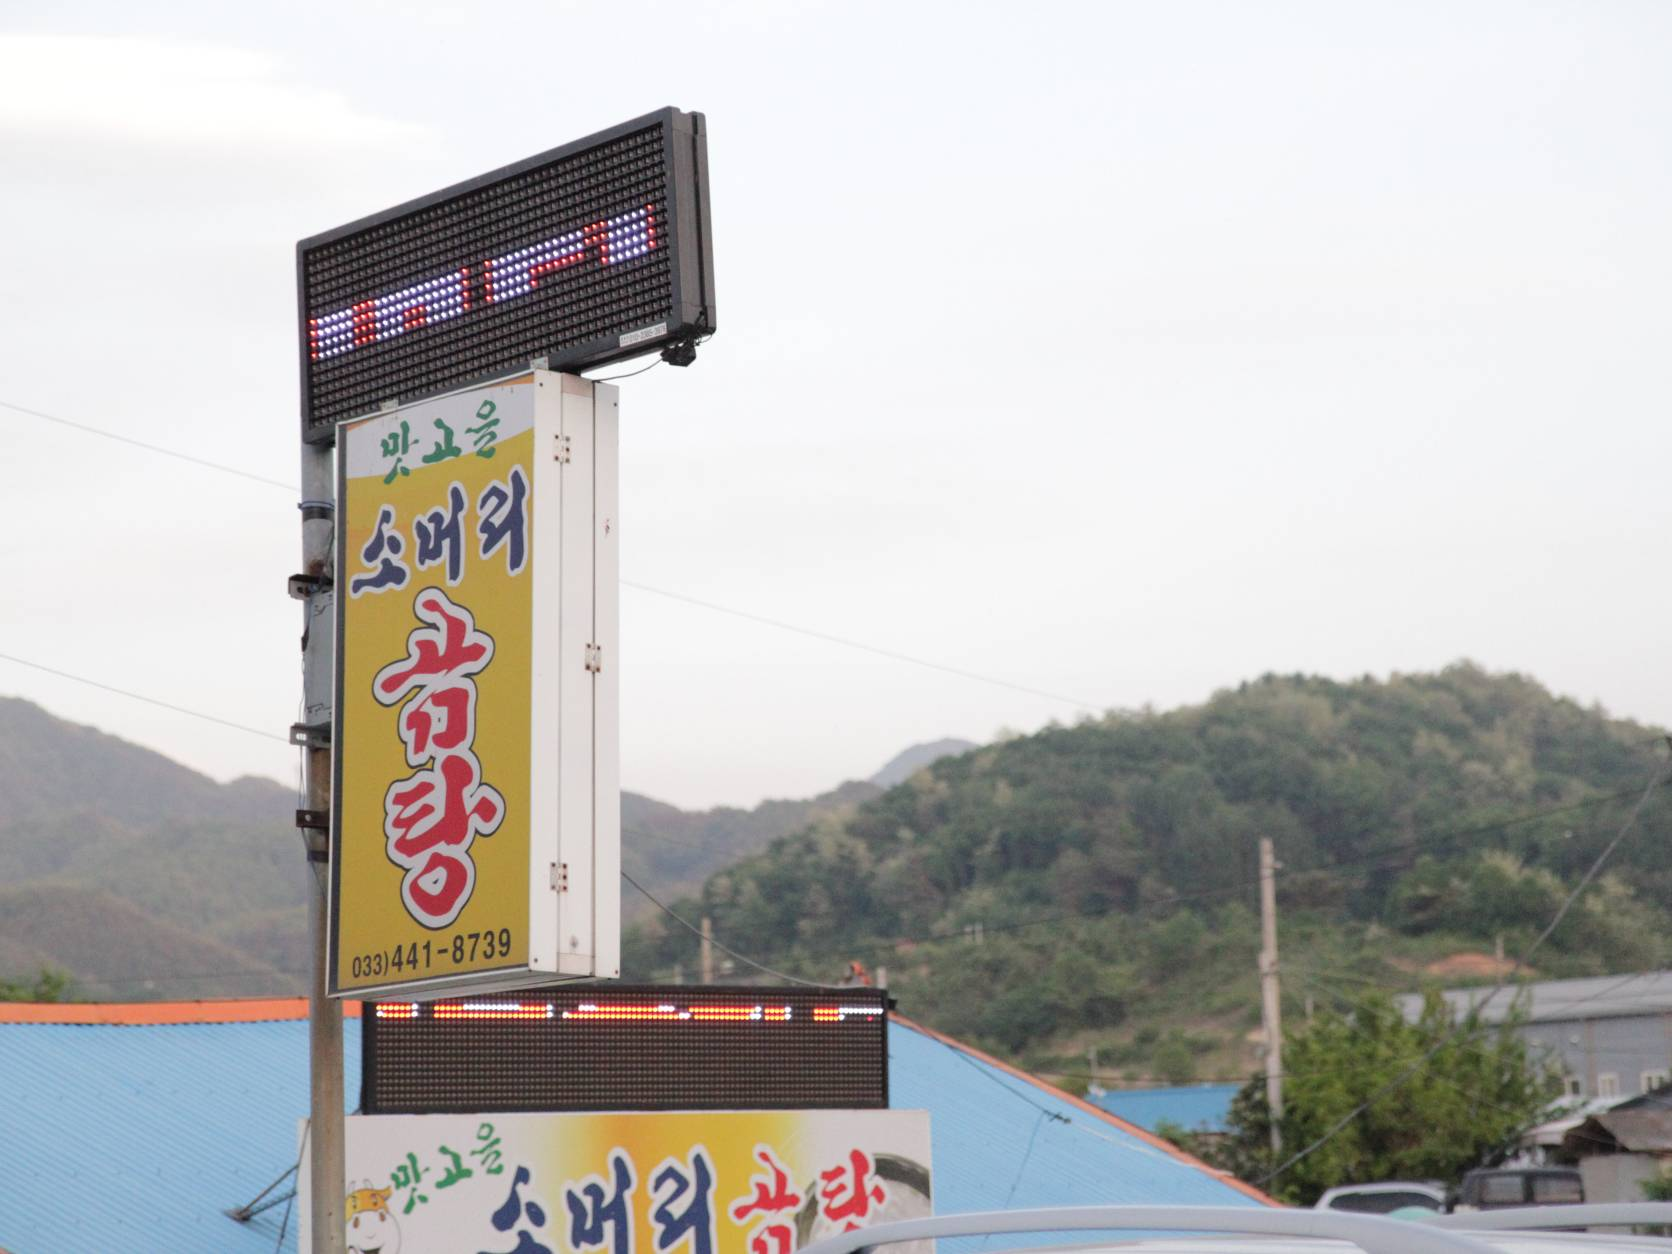 Daeboung  / South Korea